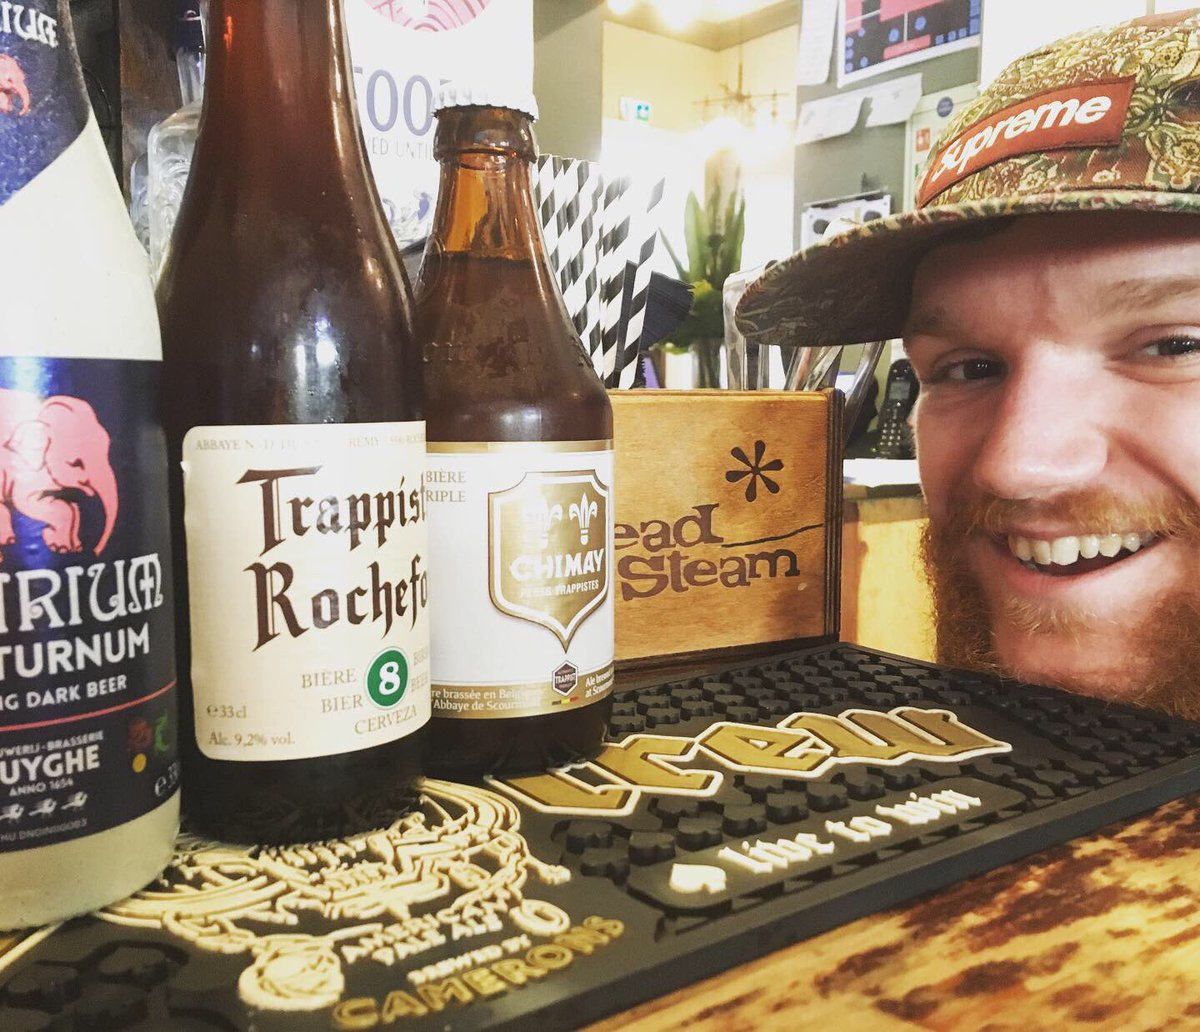 Ivan's homework! 'research' three of our excellent beers!  Delirium Nocturnum, Chimay Tripple and Rochefort 8! What do you know about theses authentic Belgium beers?  #beerme #headofsteamhuddersfield #cameronsbrewery #Belgiumbeer #beer #beerschool #trappist